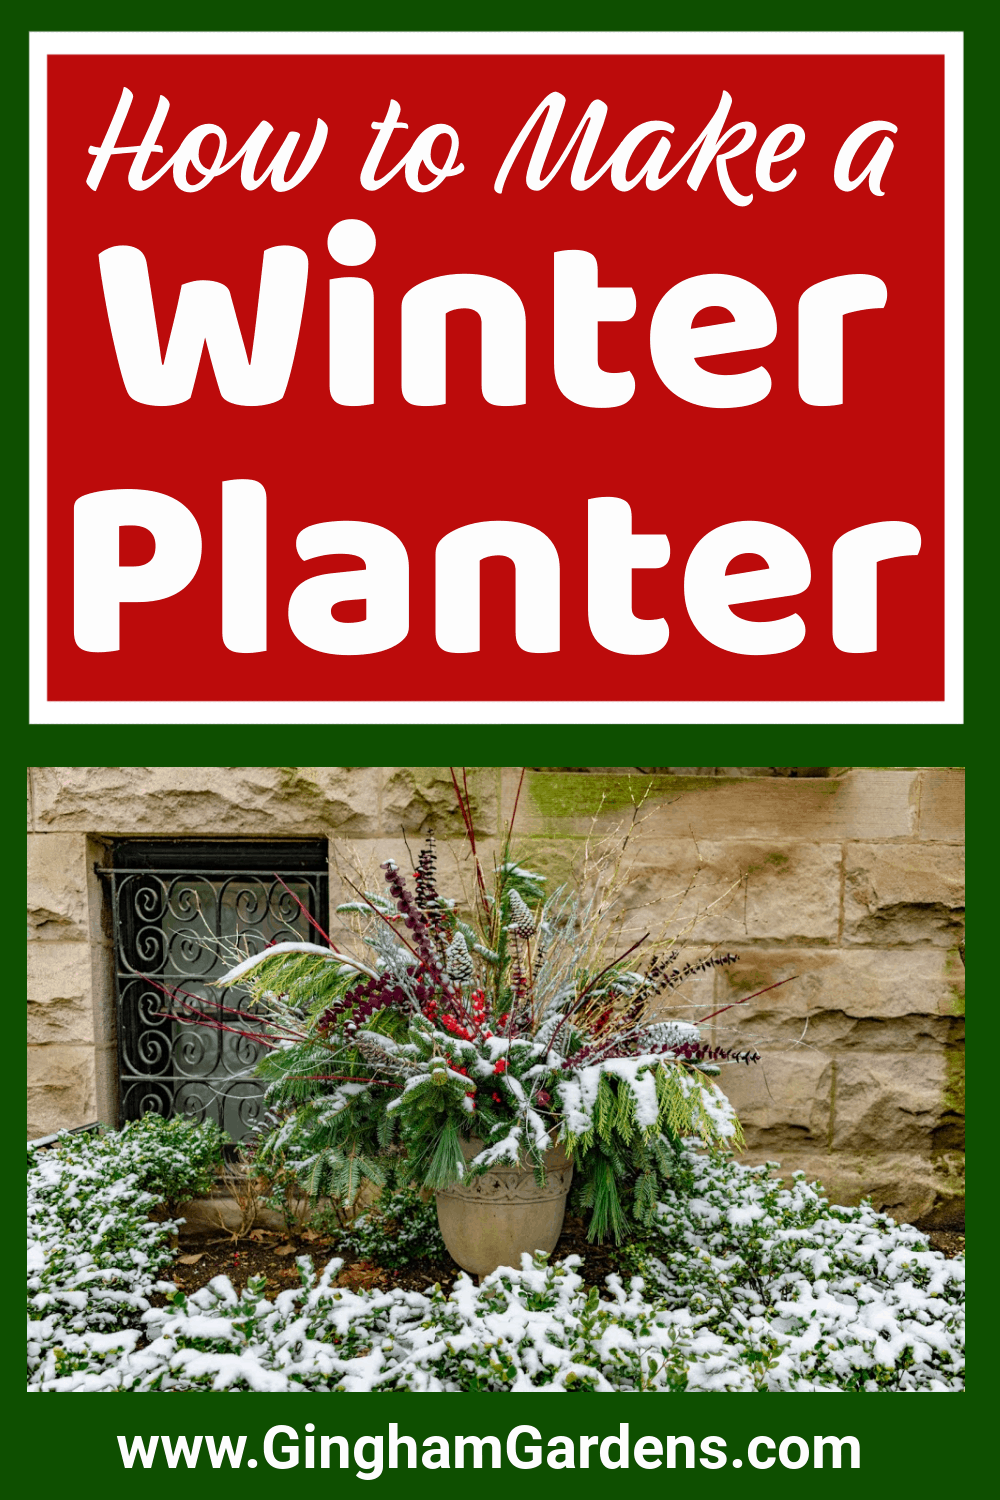 Image of a Winter Planter with Text Overlay - How to Make a Winter Planter